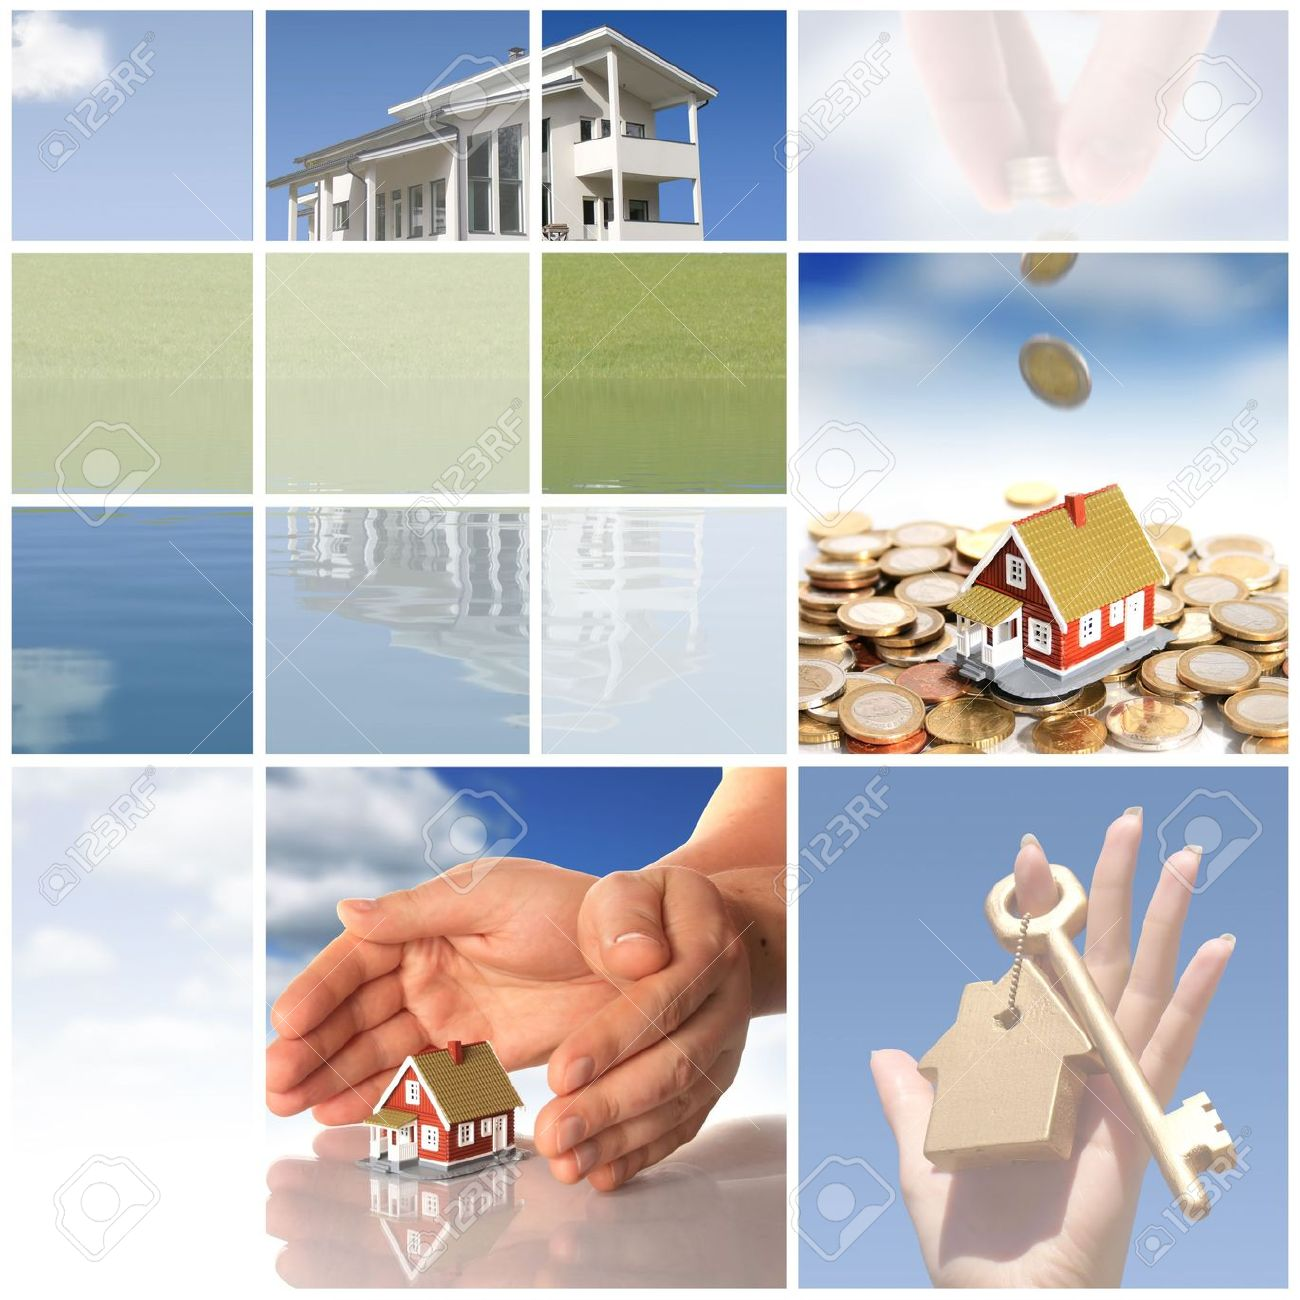 4835126-Collage-Invest-in-real-estate-concept--Stock-Photo-property